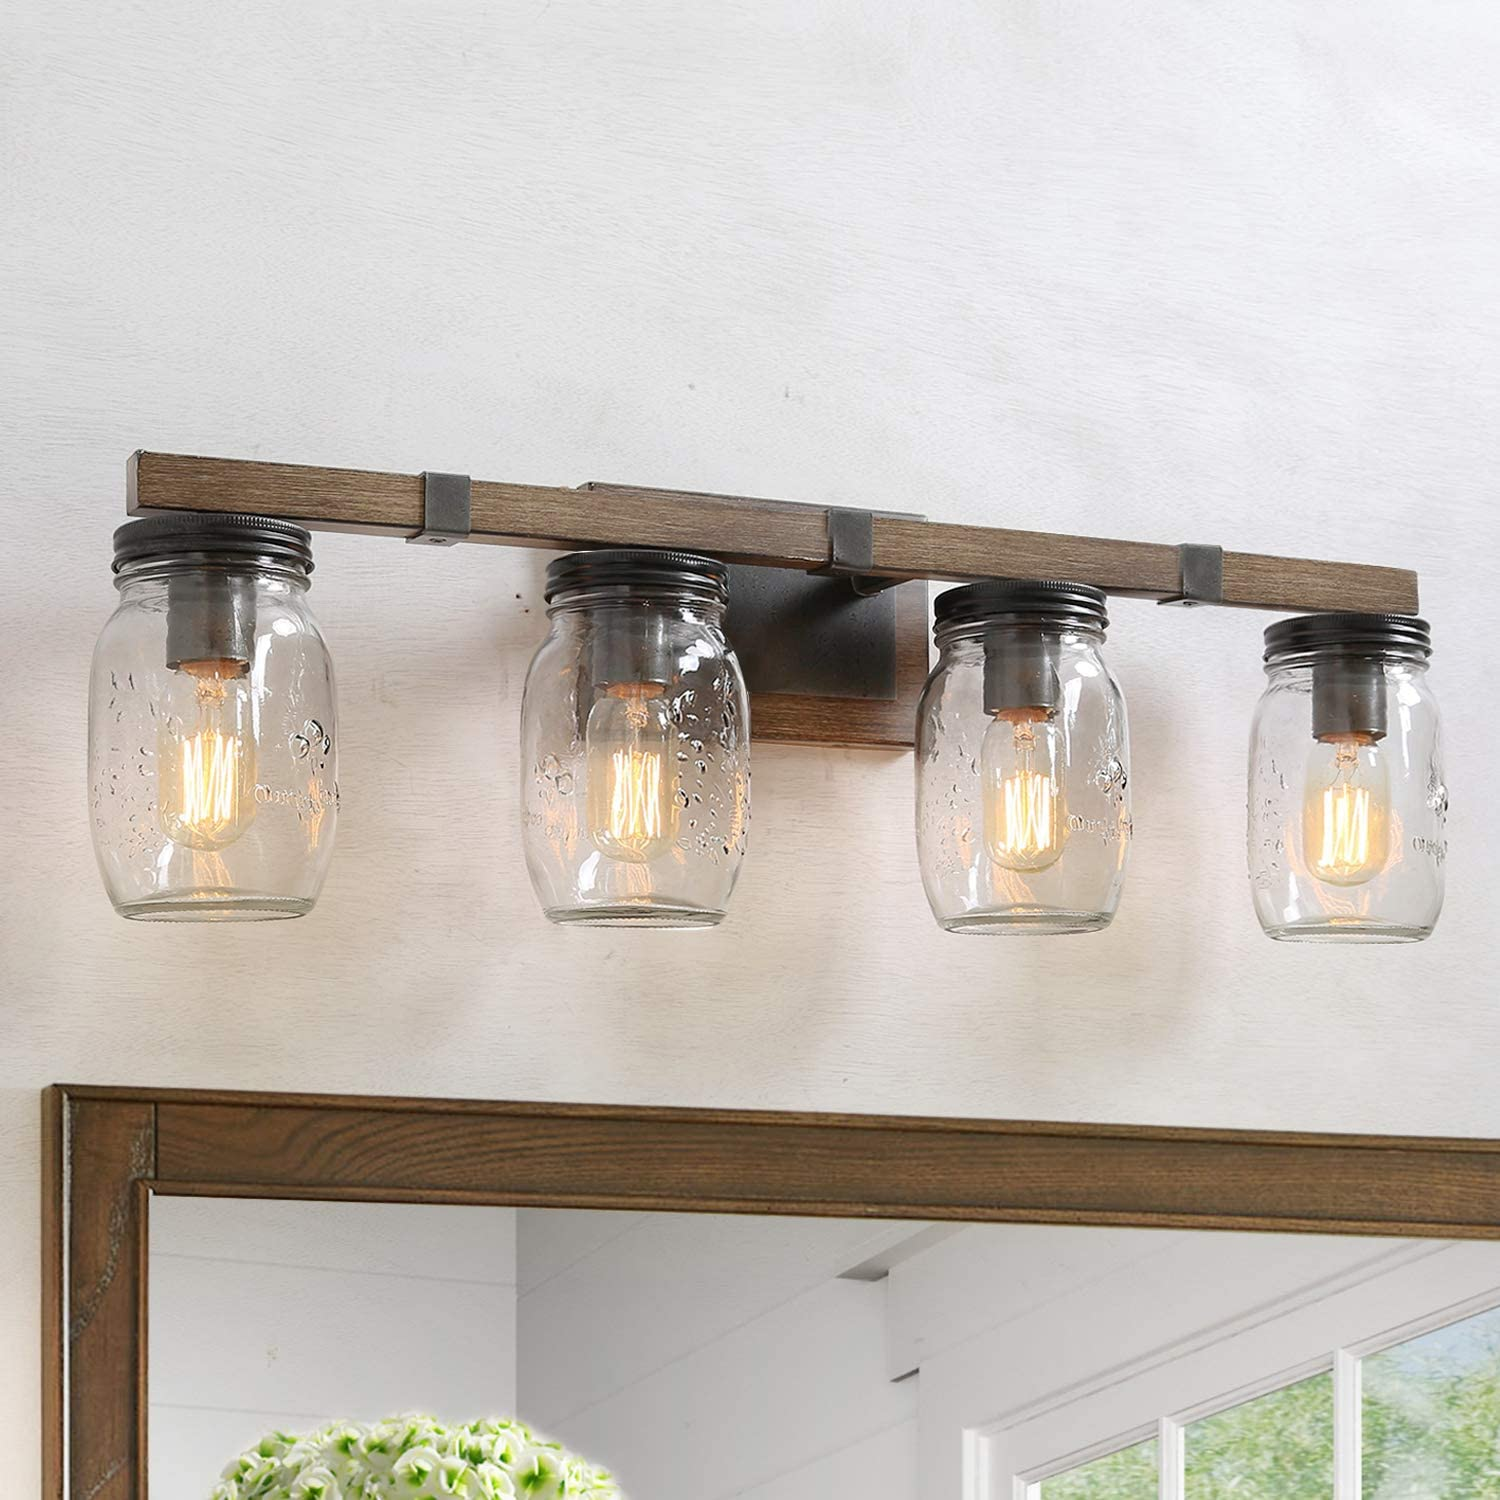 Buy Lnc Rustic Bathroom Light Fixtures Farmhouse Vanity Lighting With Mason Jar Glass Wooden Finished 29 Inches Online In Indonesia B085hnwjnw